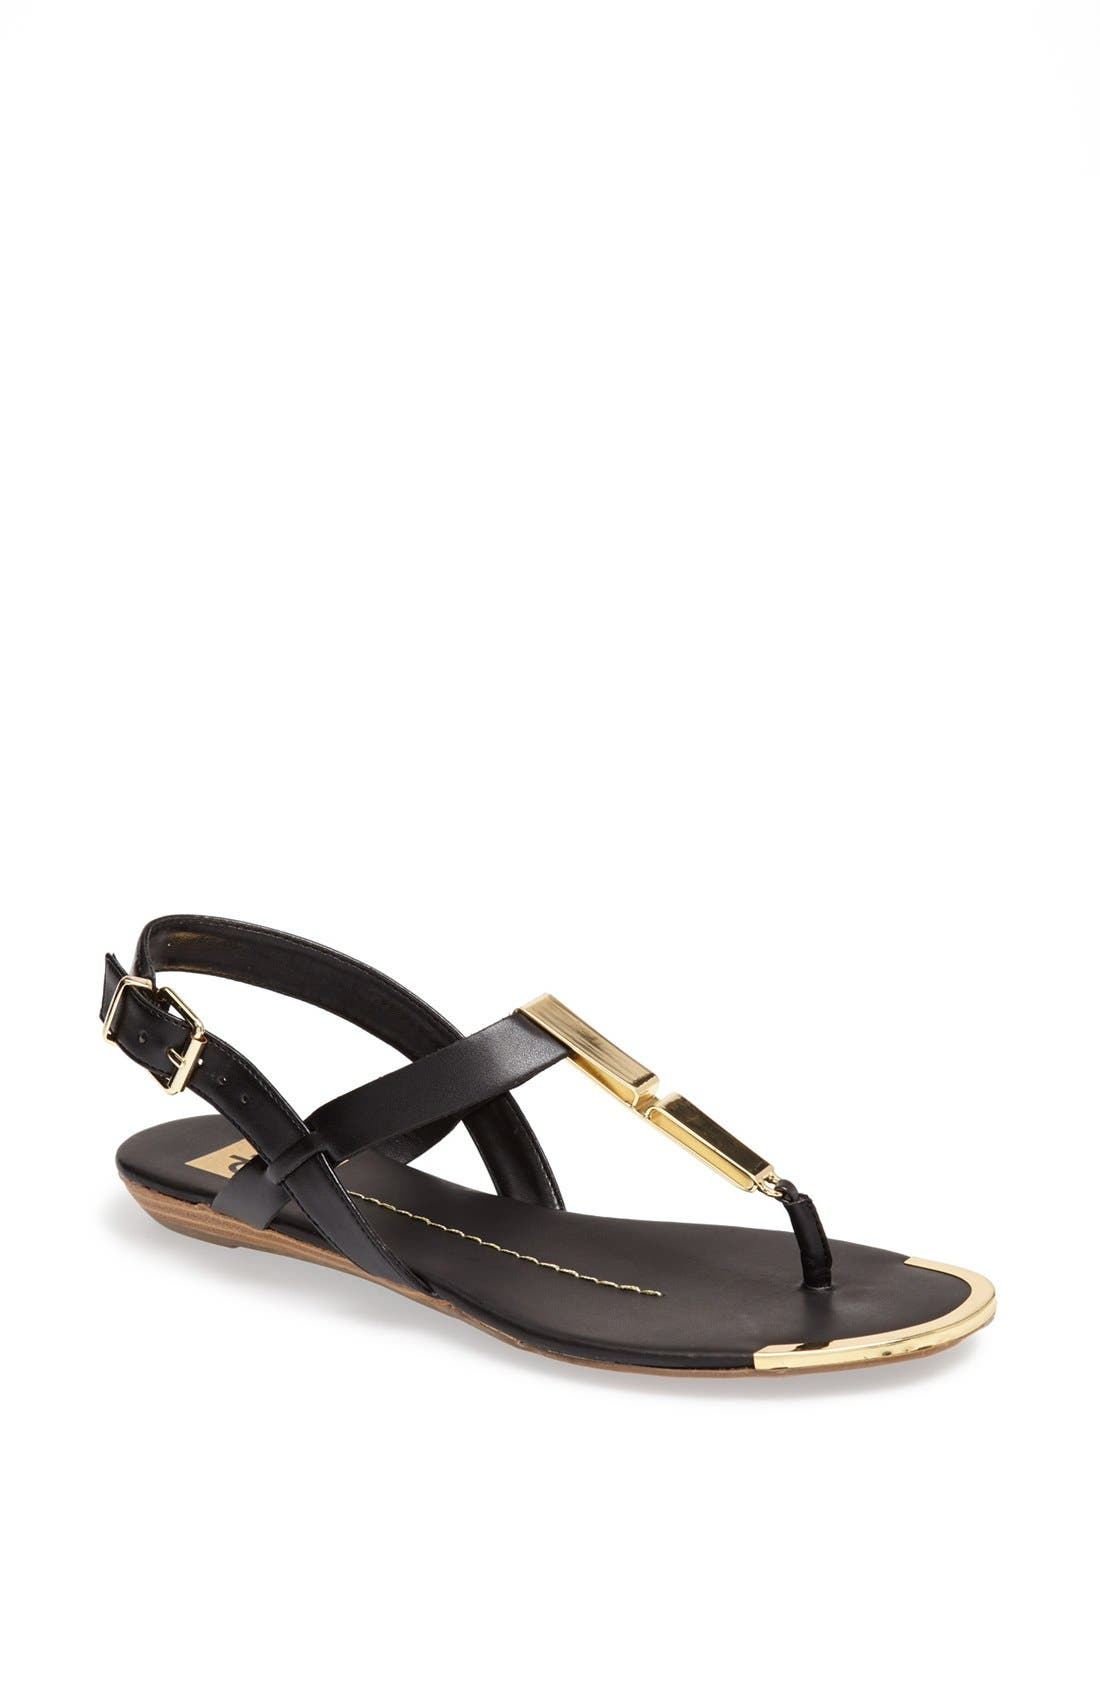 DV by Dolce Vita 'Abley' Thong Sandal,                         Main,                         color, 001